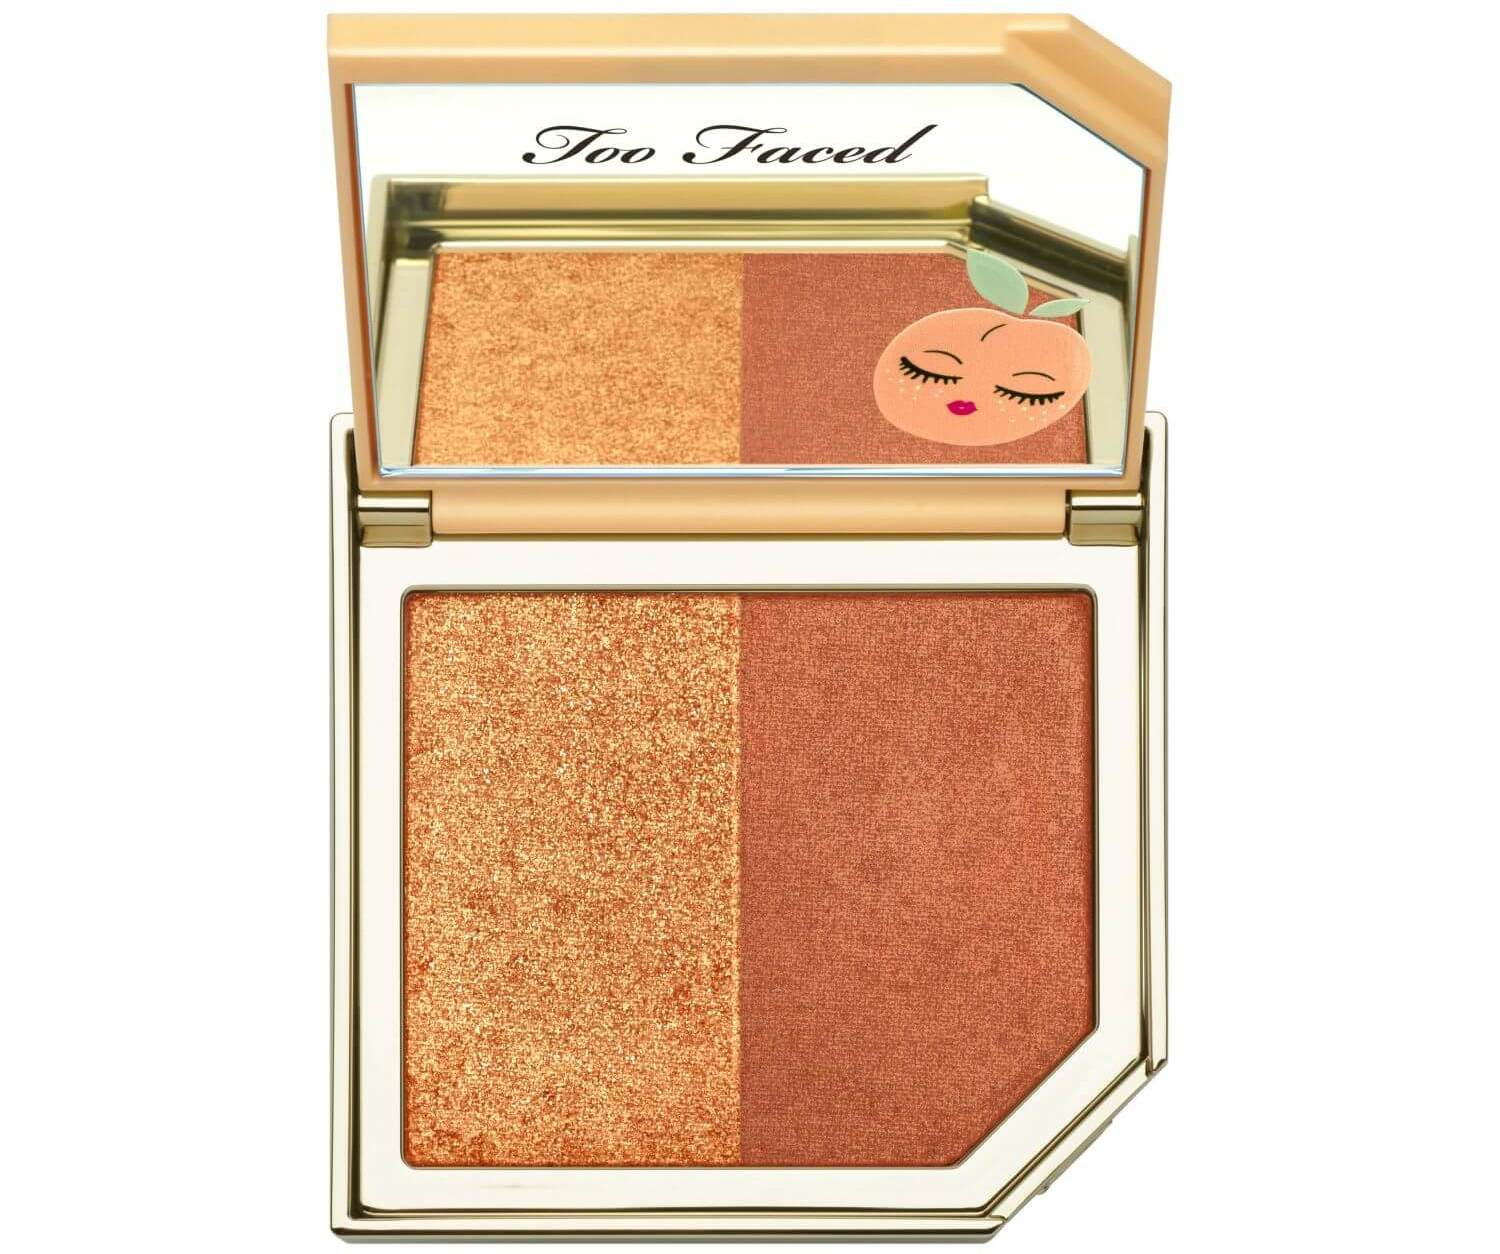 revue-collection-tutti-frutti-too-faced-blush-fruit-cocktail-strobeberry-sephora-france-makeupbyazadig-swatch-avis-prix-rose-Apricot